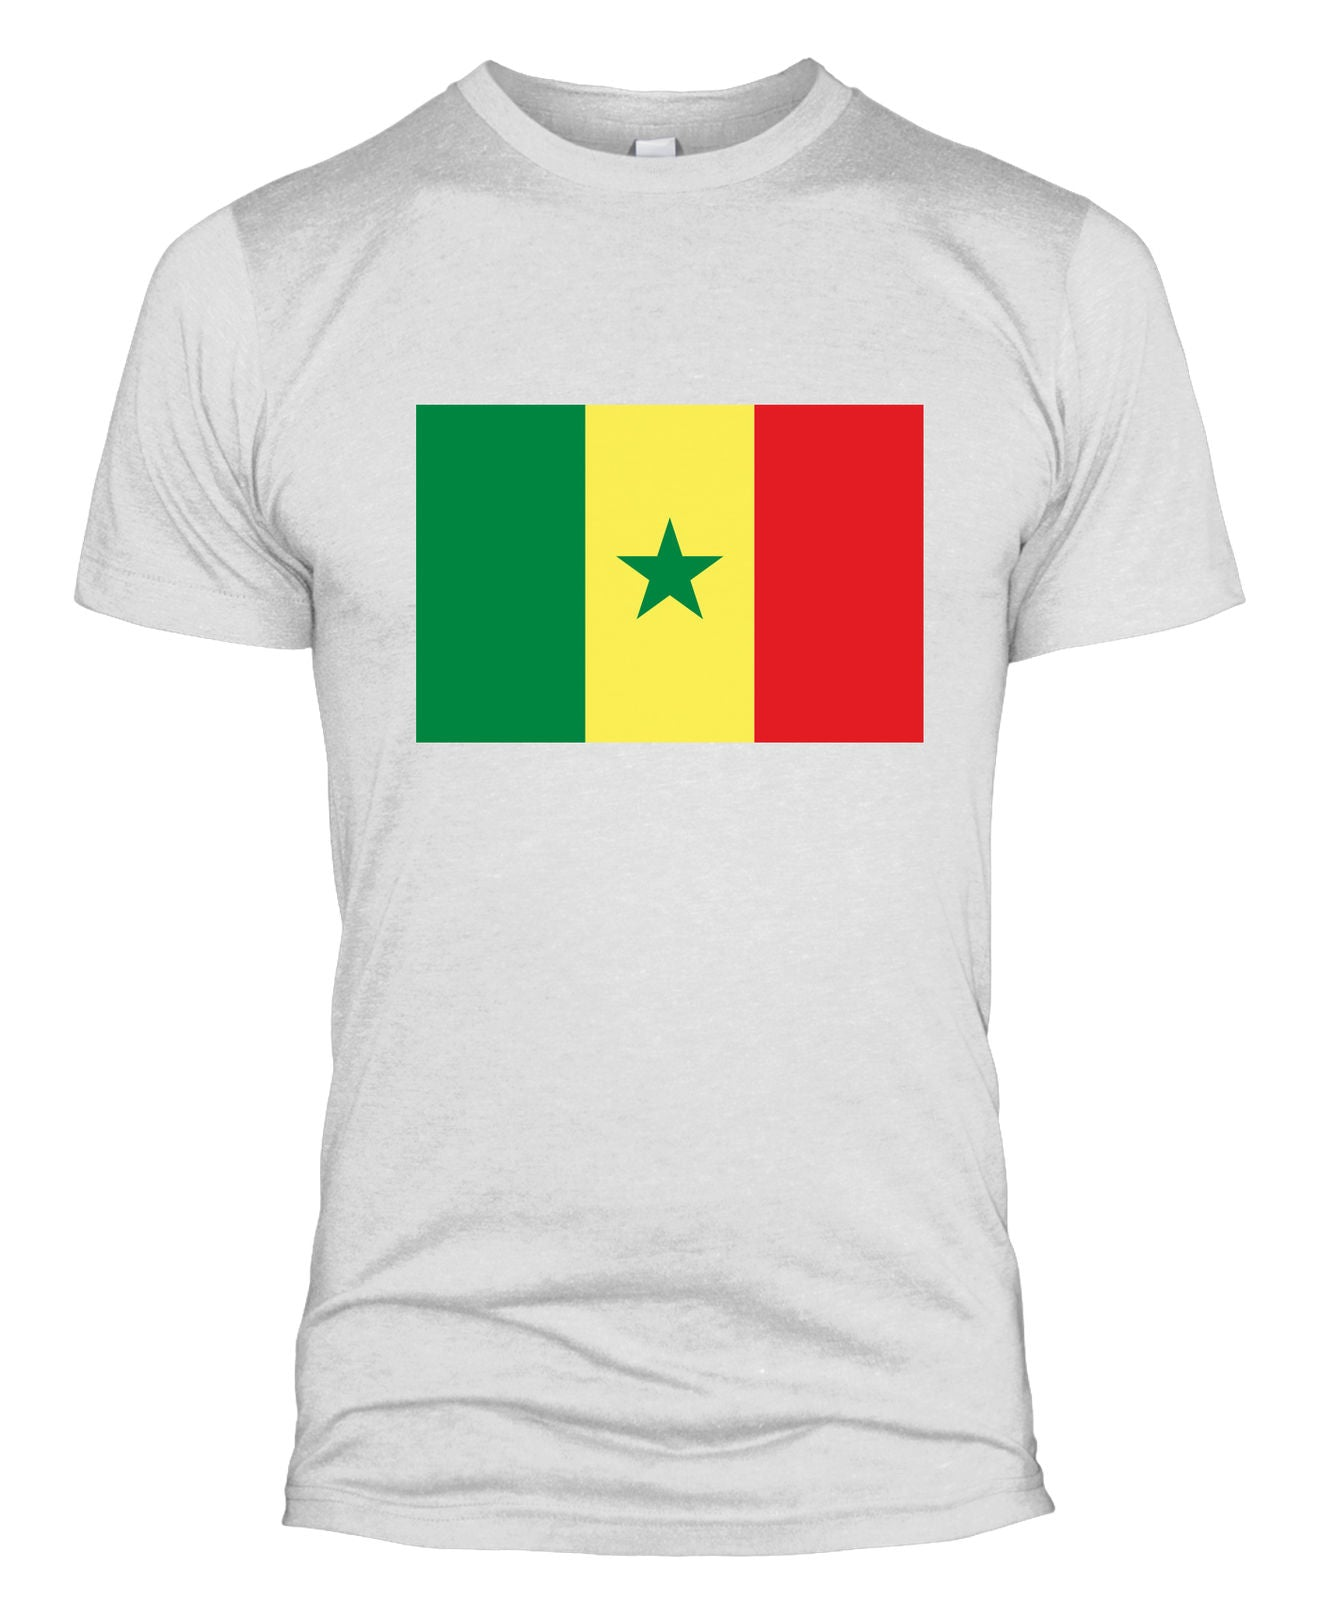 new arrivals cedaf 46aa1 Senegal Flag T Shirt Country National Football Team Kit World Cup Men Women  L254 - The Clothing Shed